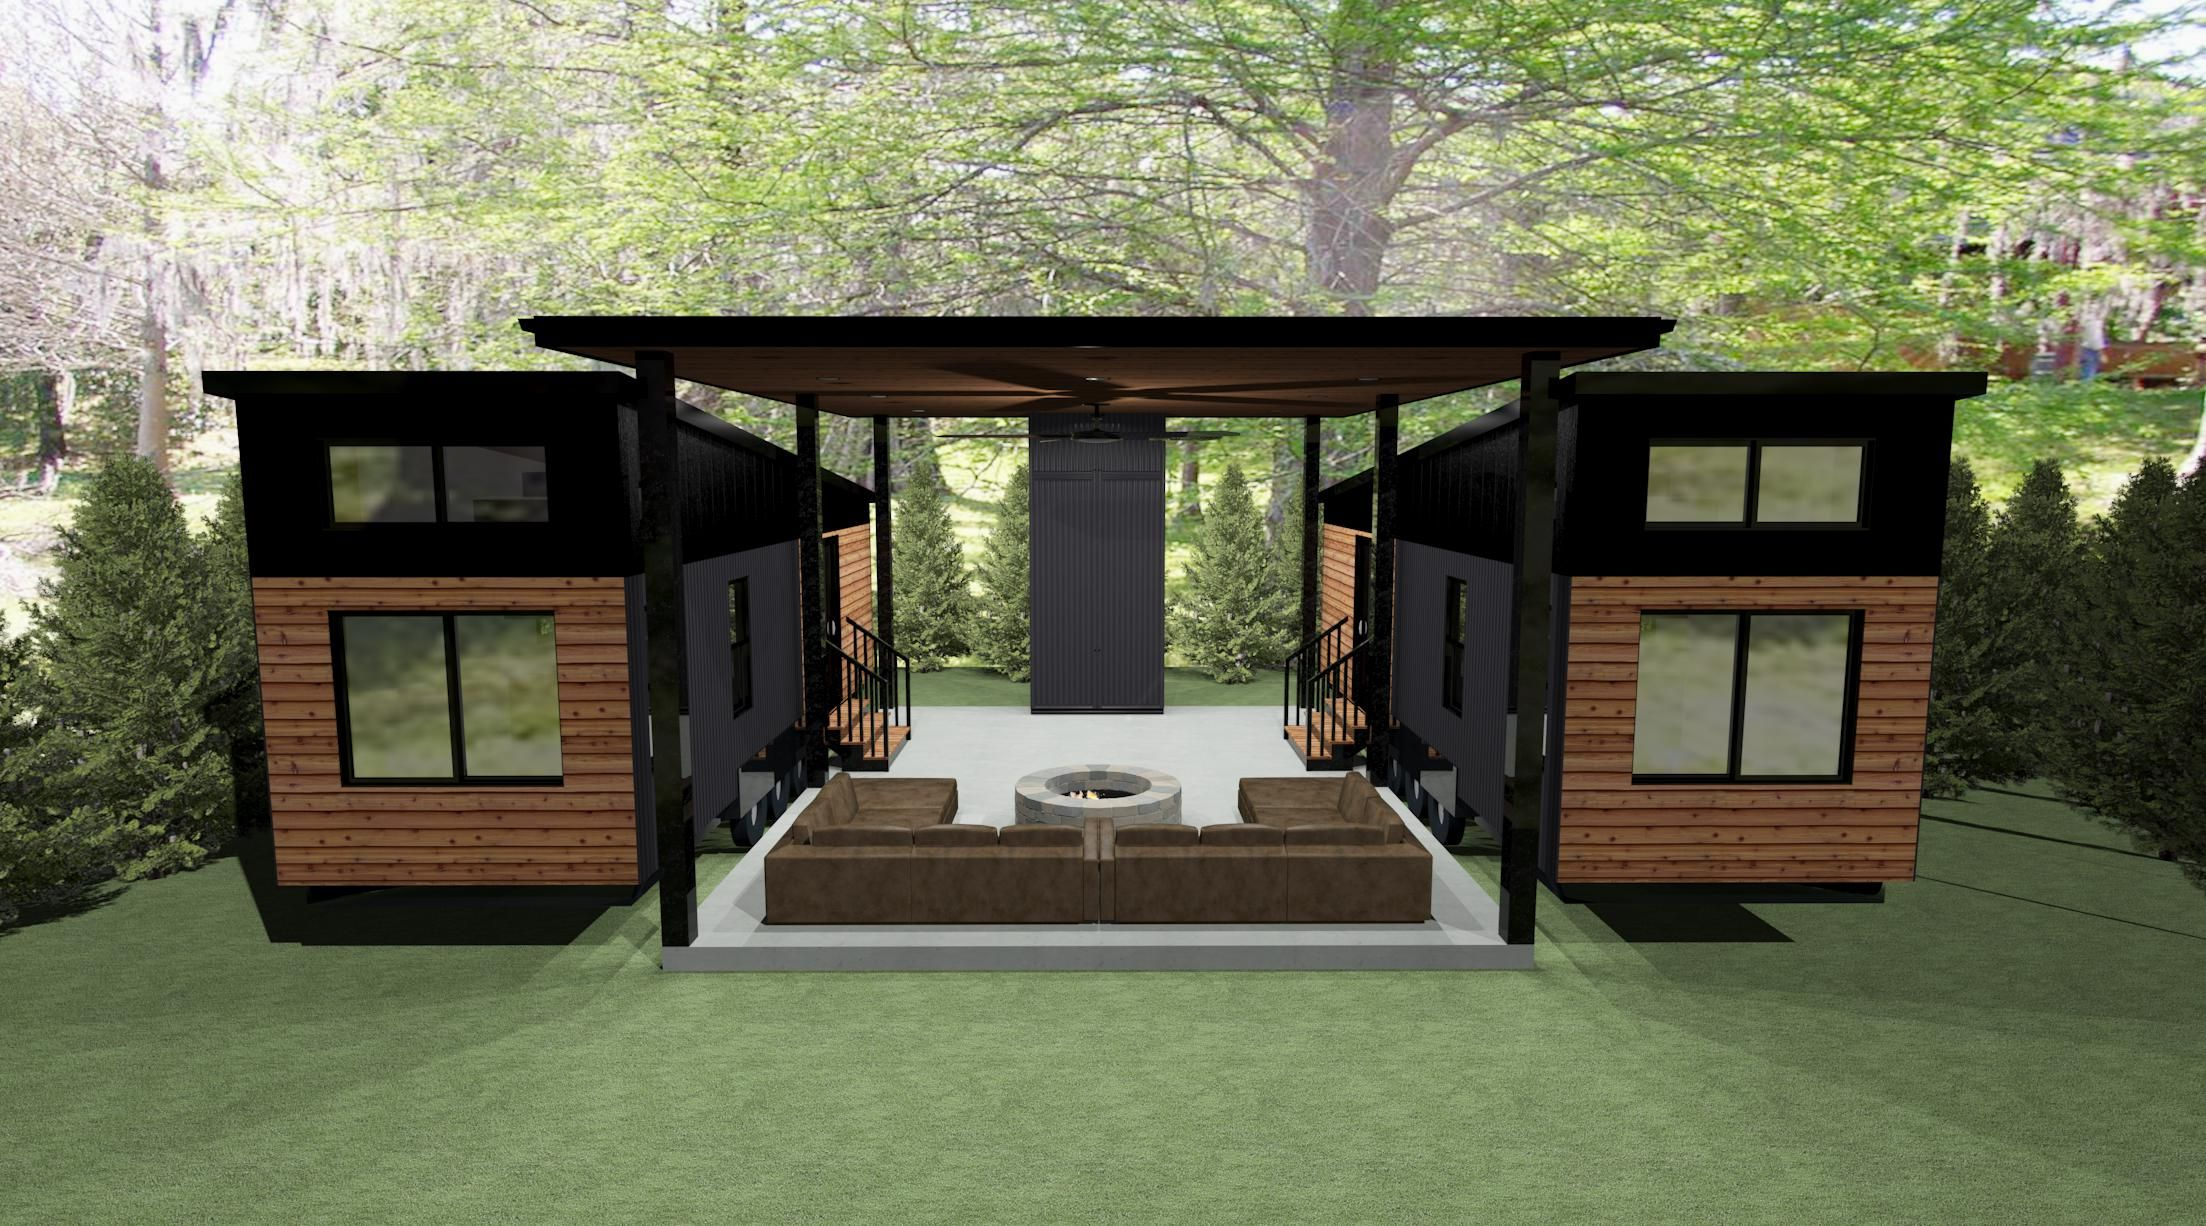 The Maryland Double Viva Collectiv Tiny House